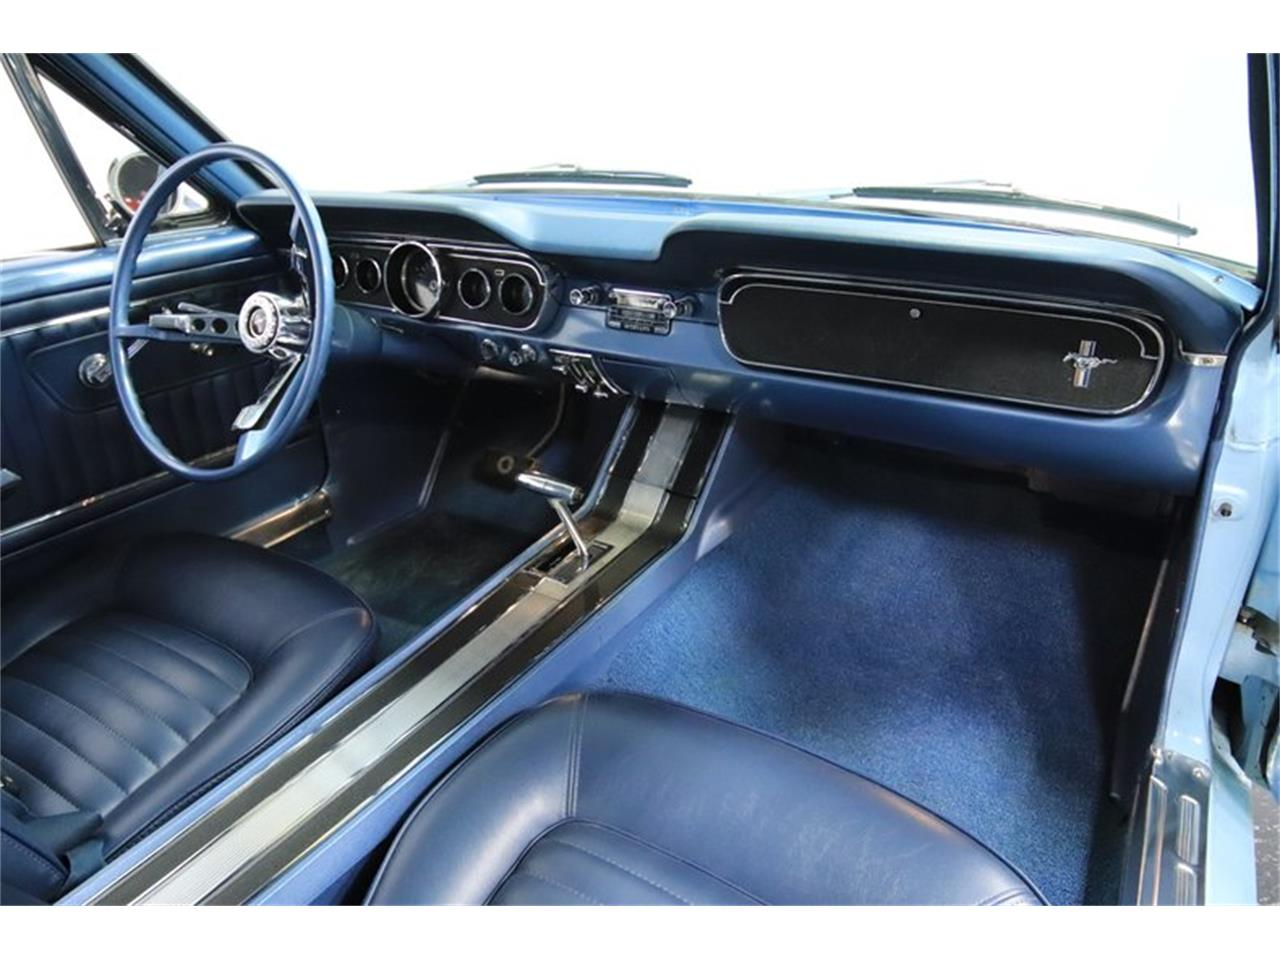 Large Picture of '65 Mustang GT located in Mesa Arizona - $24,995.00 - MI7M